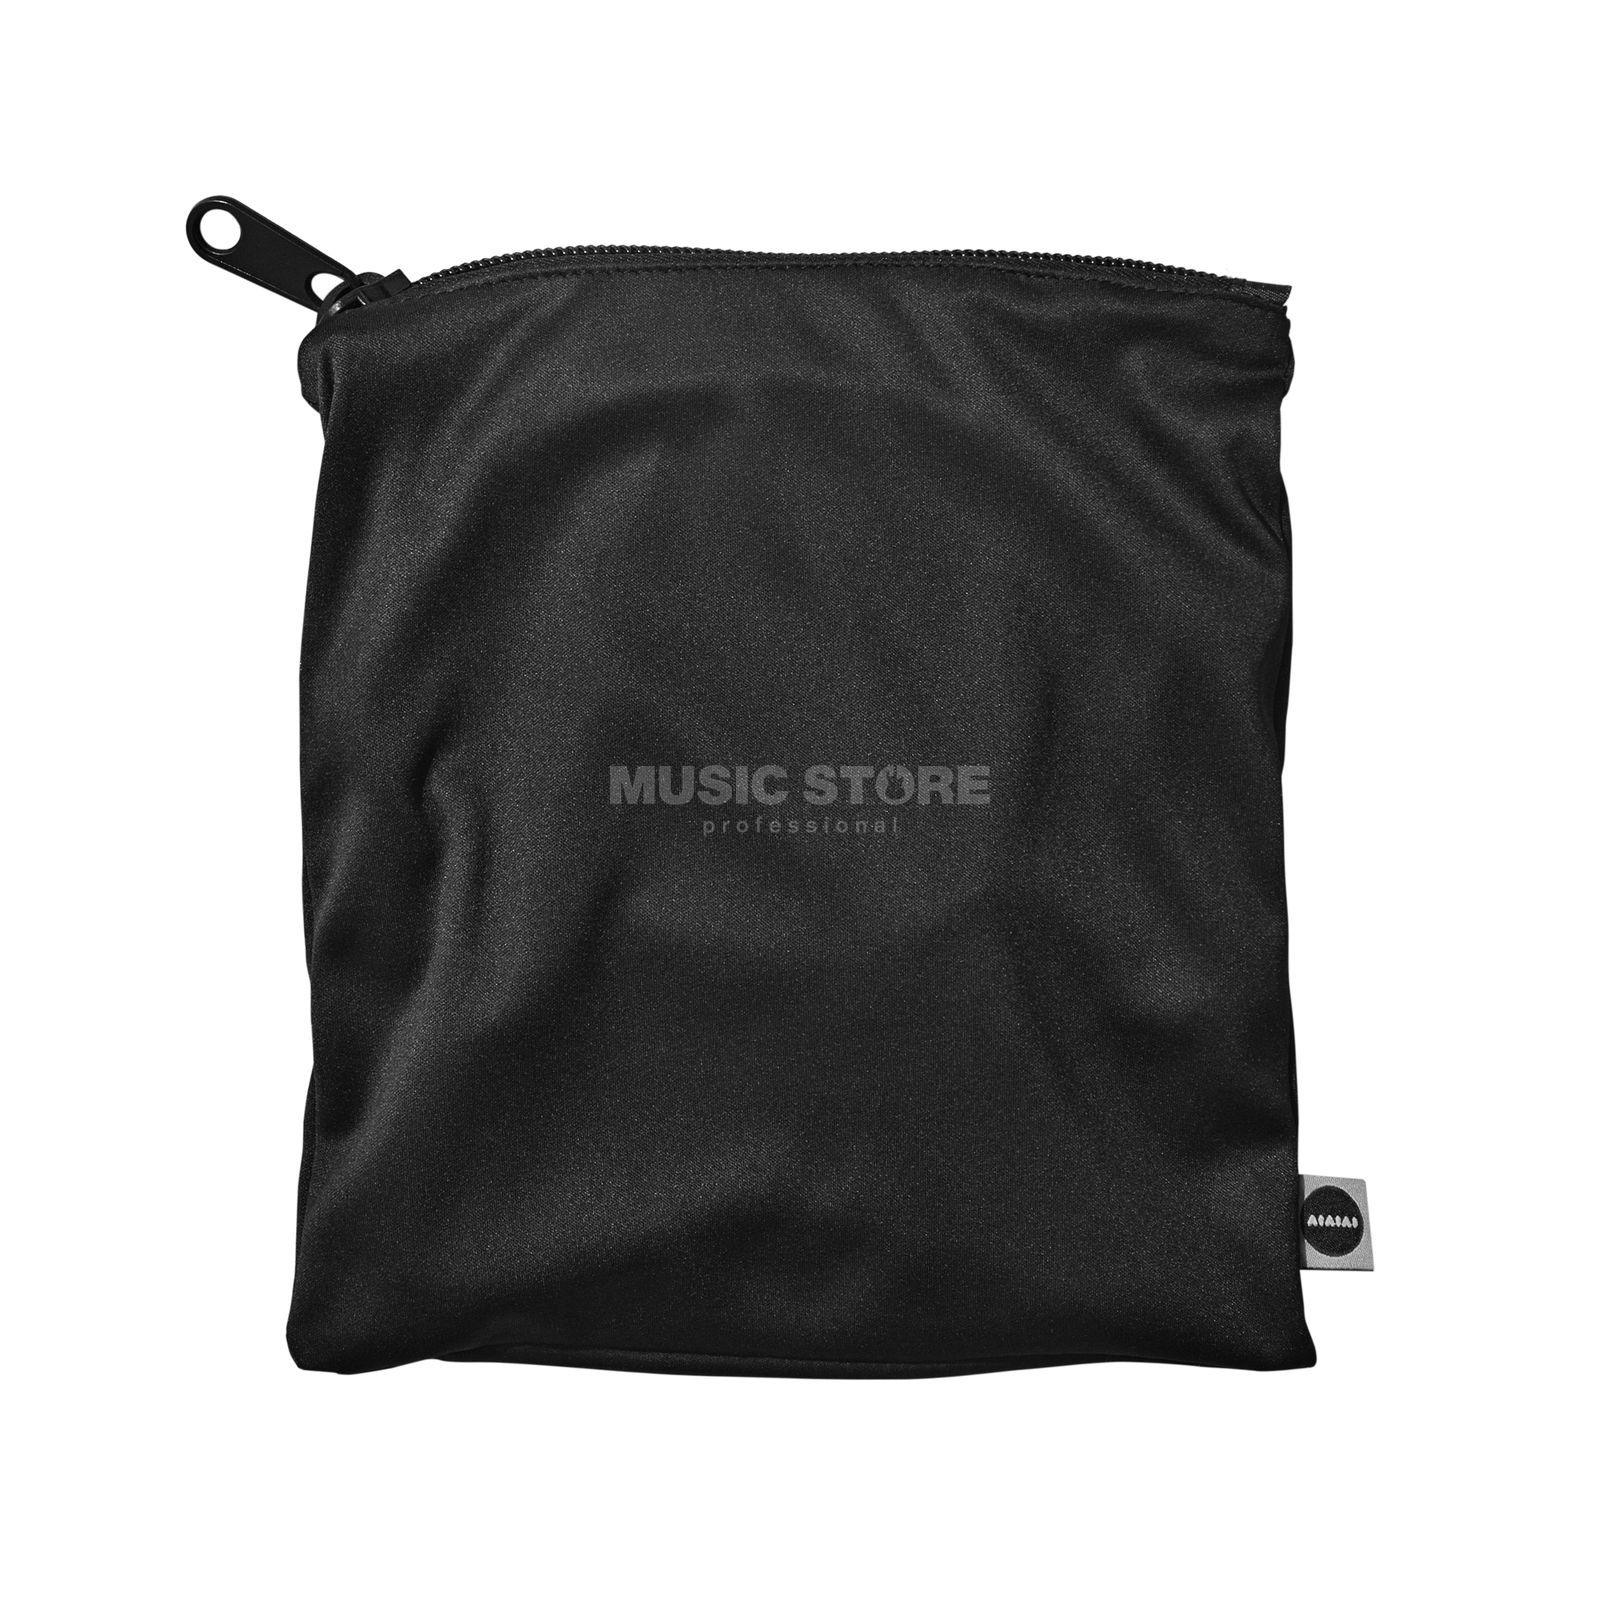 Aiaiai A01 - protective pouch Tasche für TMA-2 Product Image